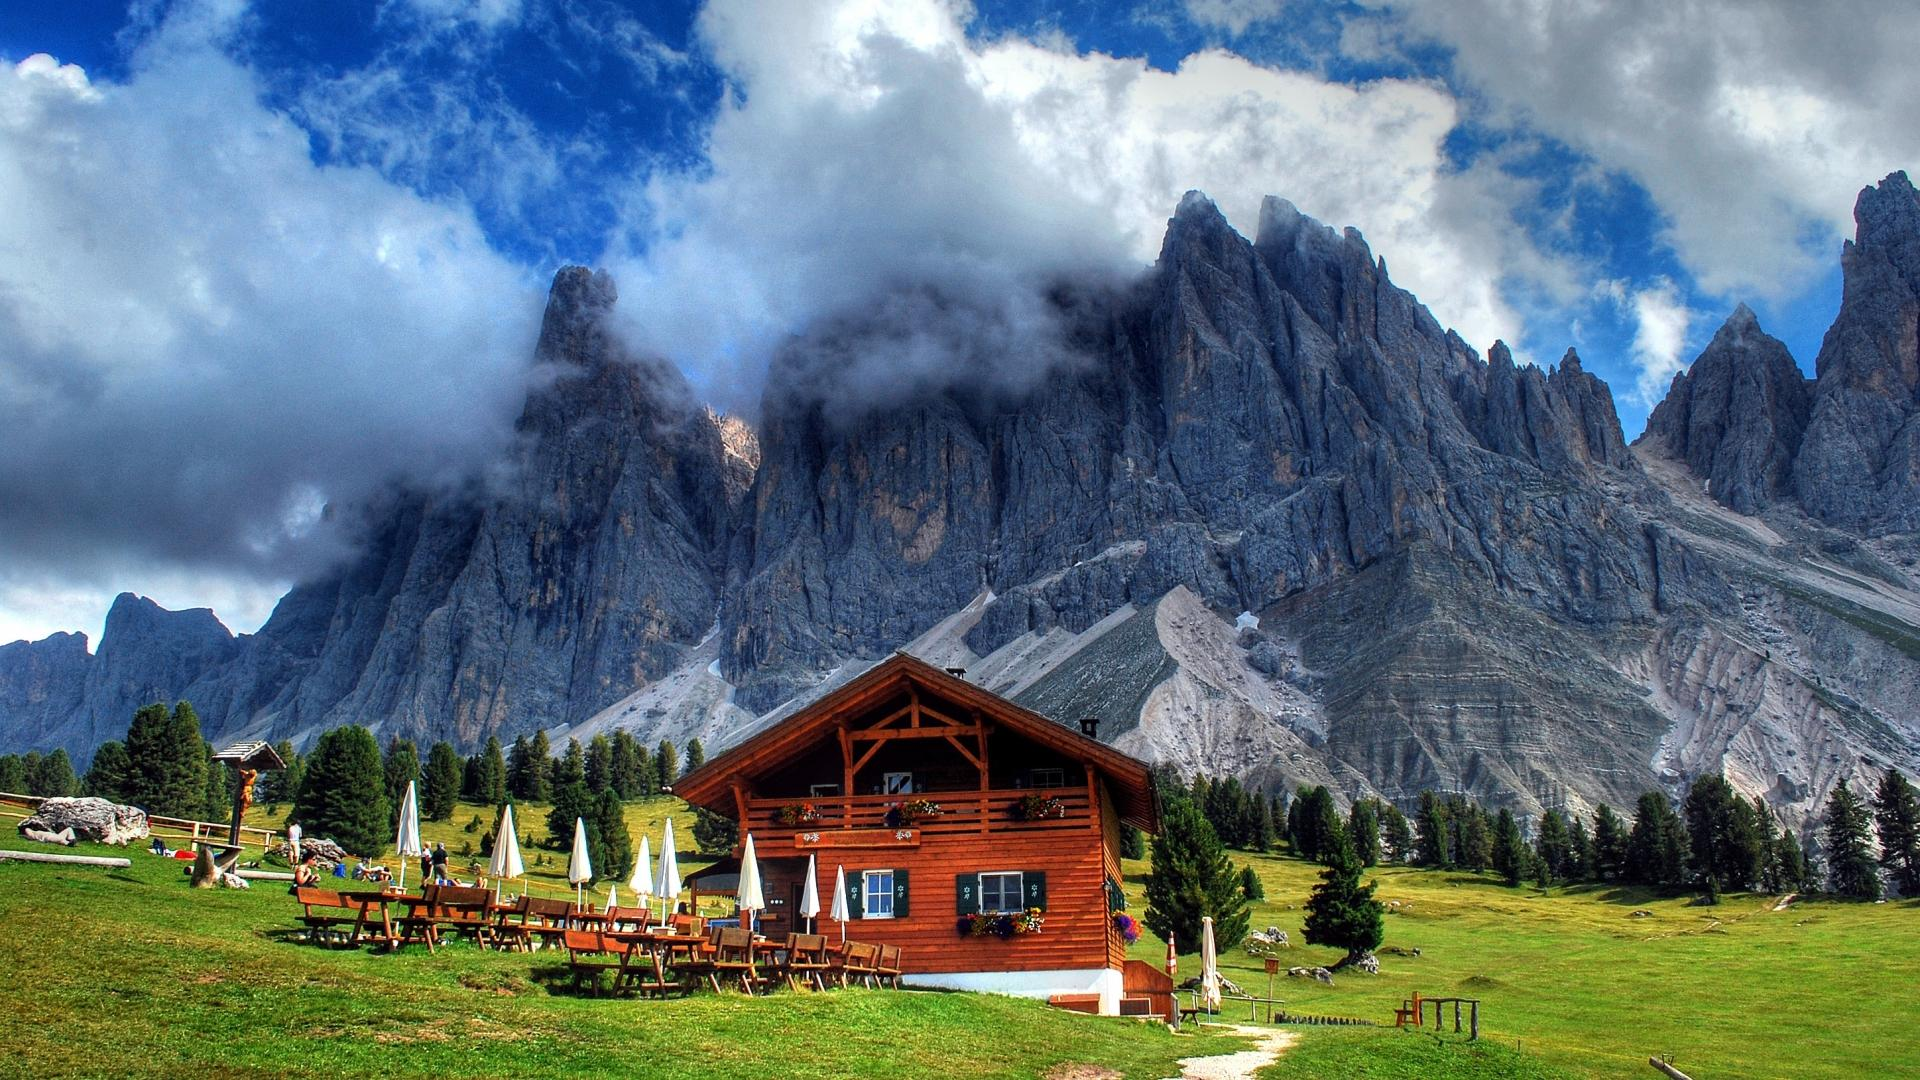 44 wallpaper switzerland on wallpapersafari - Swiss alps wallpaper ...